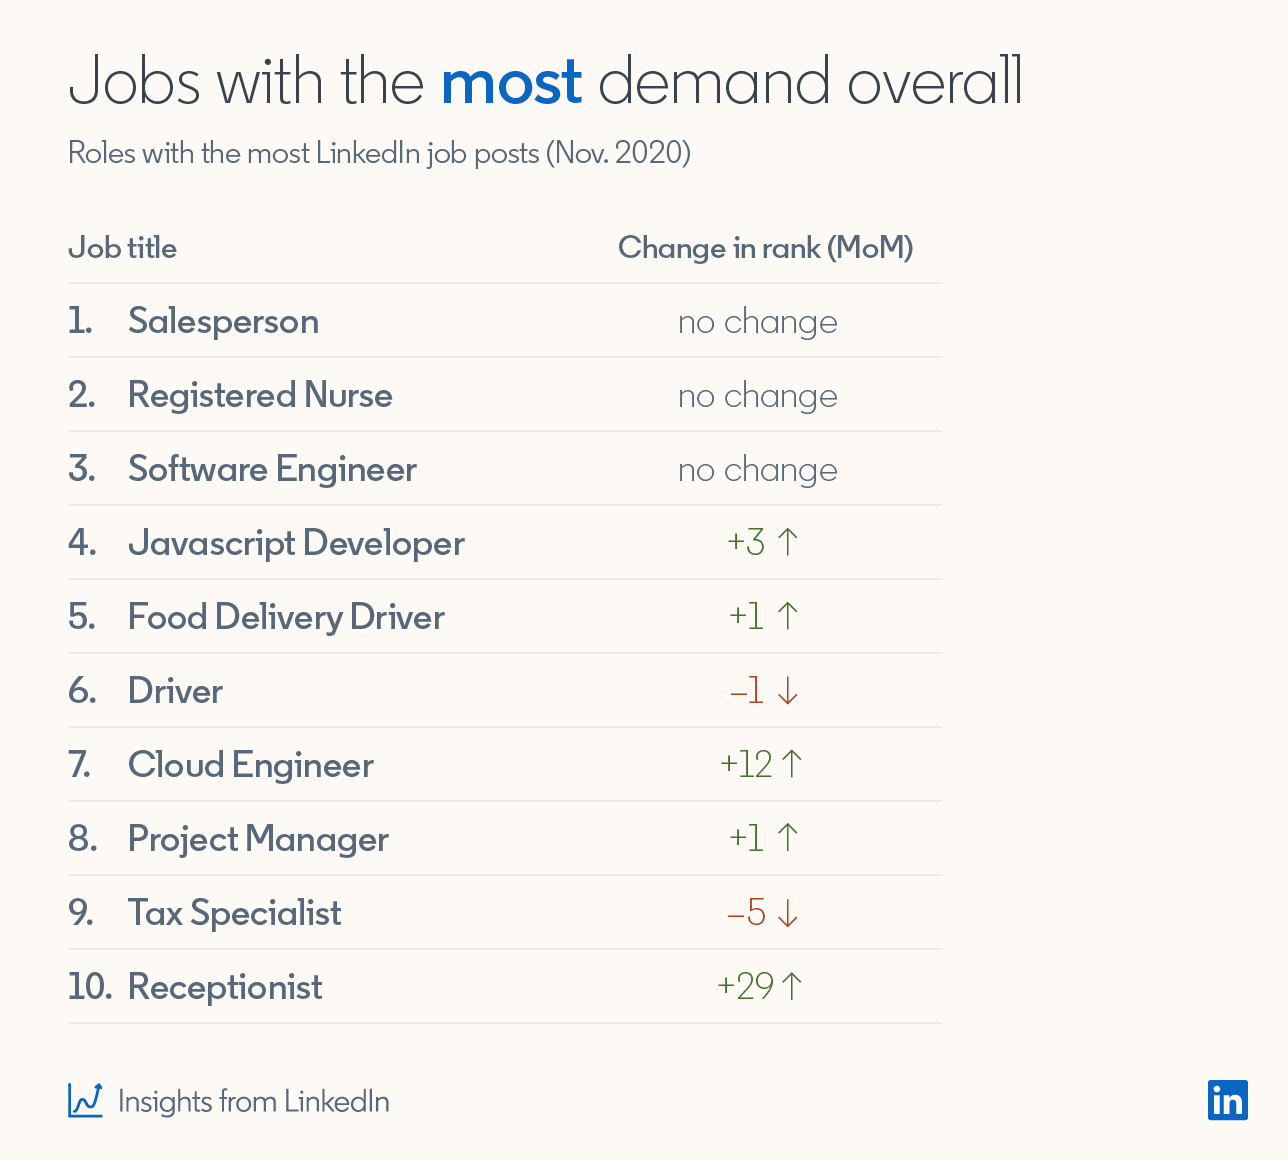 Jobs with the most demand overall Roles with the most LinkedIn job posts (Nov 2020)  1. Salesperson (no change in rank month-over-month) 2. Registered Nurse (no change in rank month-over-month) 3. Software Engineer (no change in rank month-over-month) 4. Javascript Developer (+3 change in rank month-over-month 5. Food Delivery Driver (+1 change in rank month-over-month) 6. Driver (-1 change in rank month-over-month) 7. Cloud Engineer (+12 change in rank month-over-month) 8. Project Manager (+1 change in rank month-over-month) 9. Tax Specialist (-5 change in rank month-over-month) 10. Receptionist (+29 change in rank month-over-month)  *Insights from LinkedIn